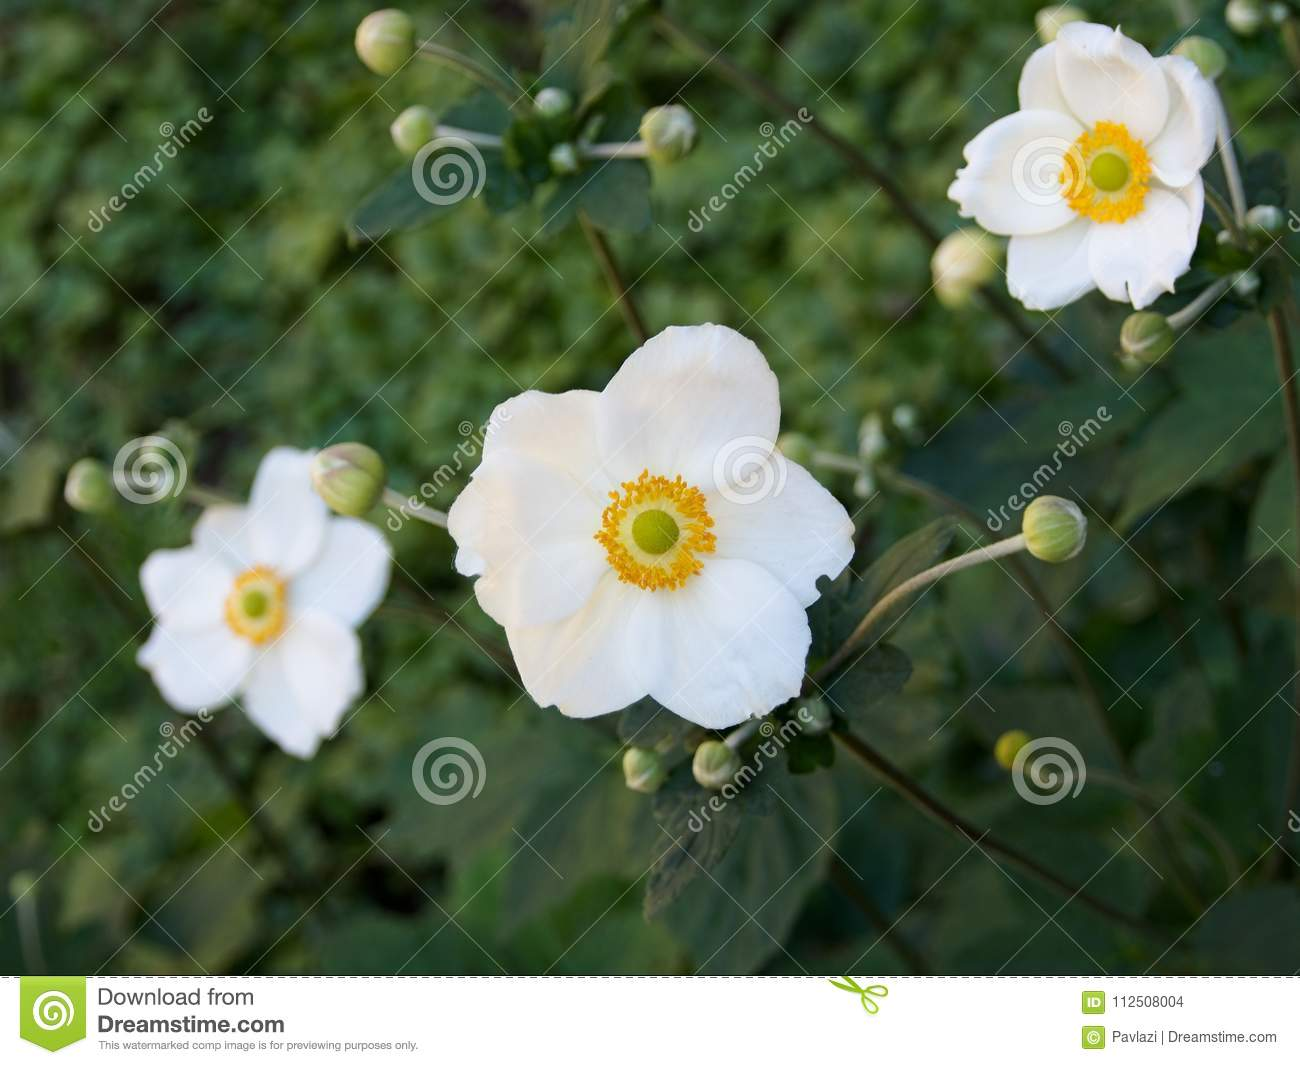 Japanese Anemone Cultivar Of White Flowers With Buds Stock Photo